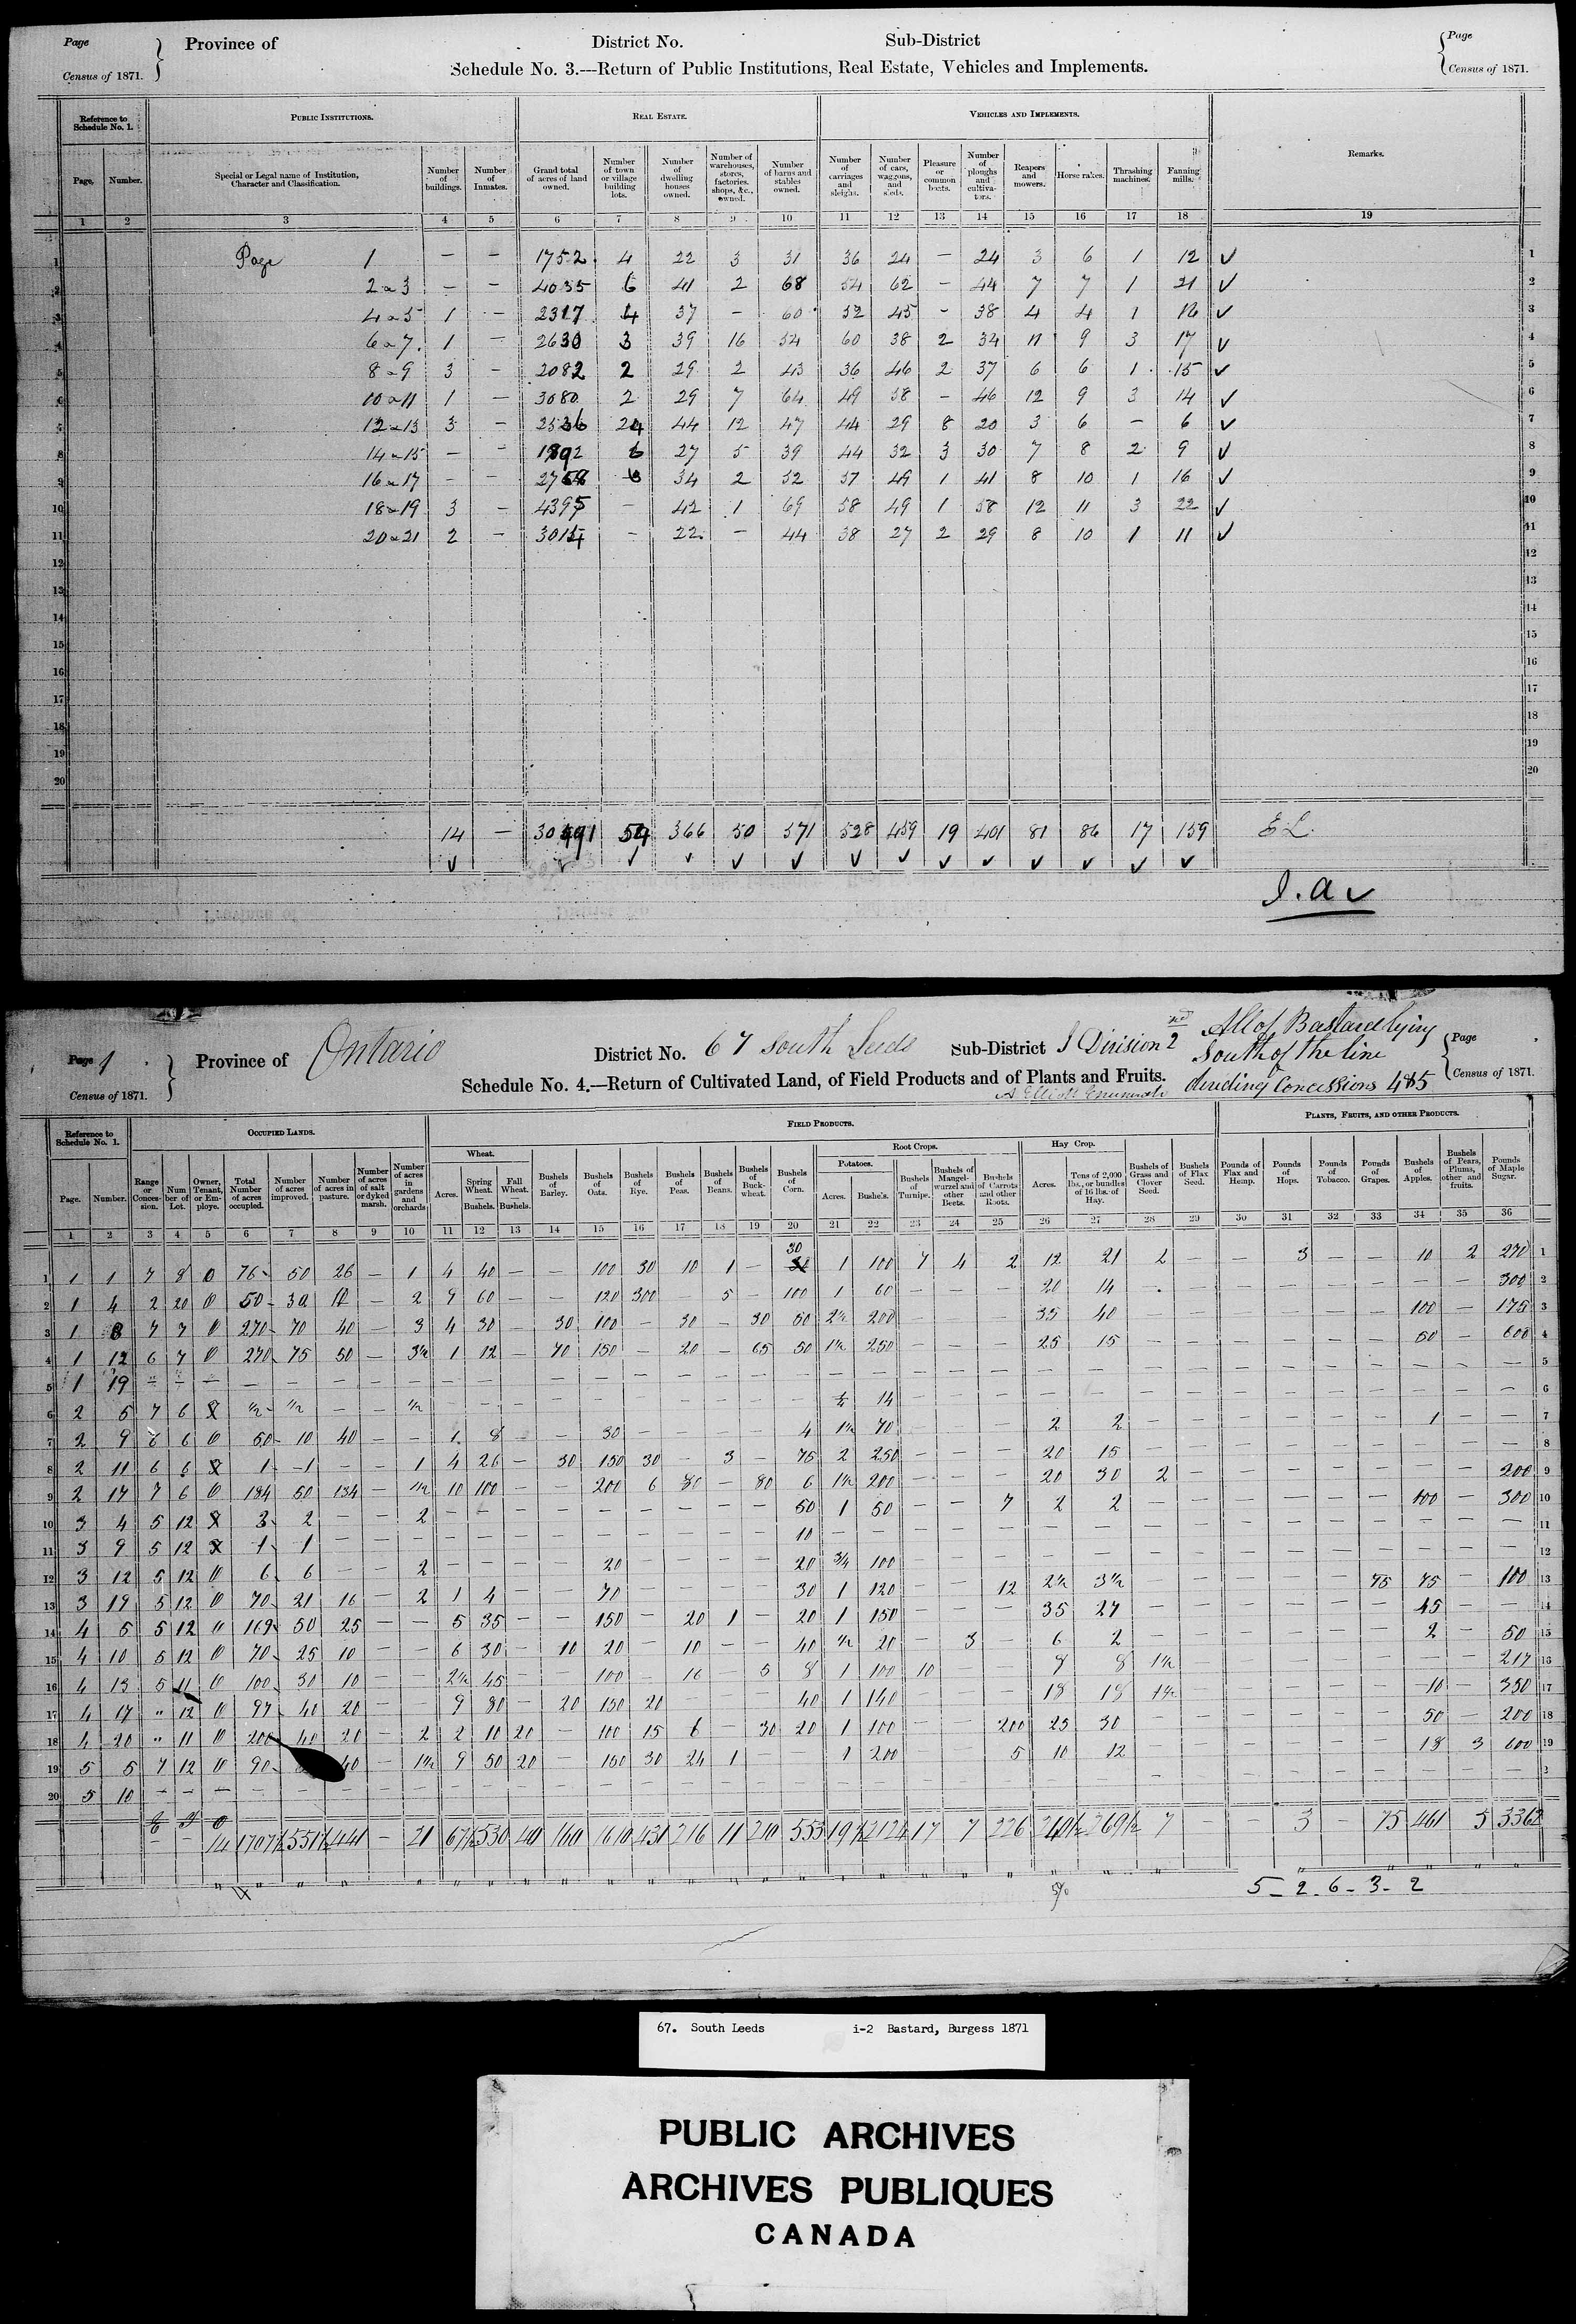 Title: Census of Canada, 1871 - Mikan Number: 142105 - Microform: c-10002